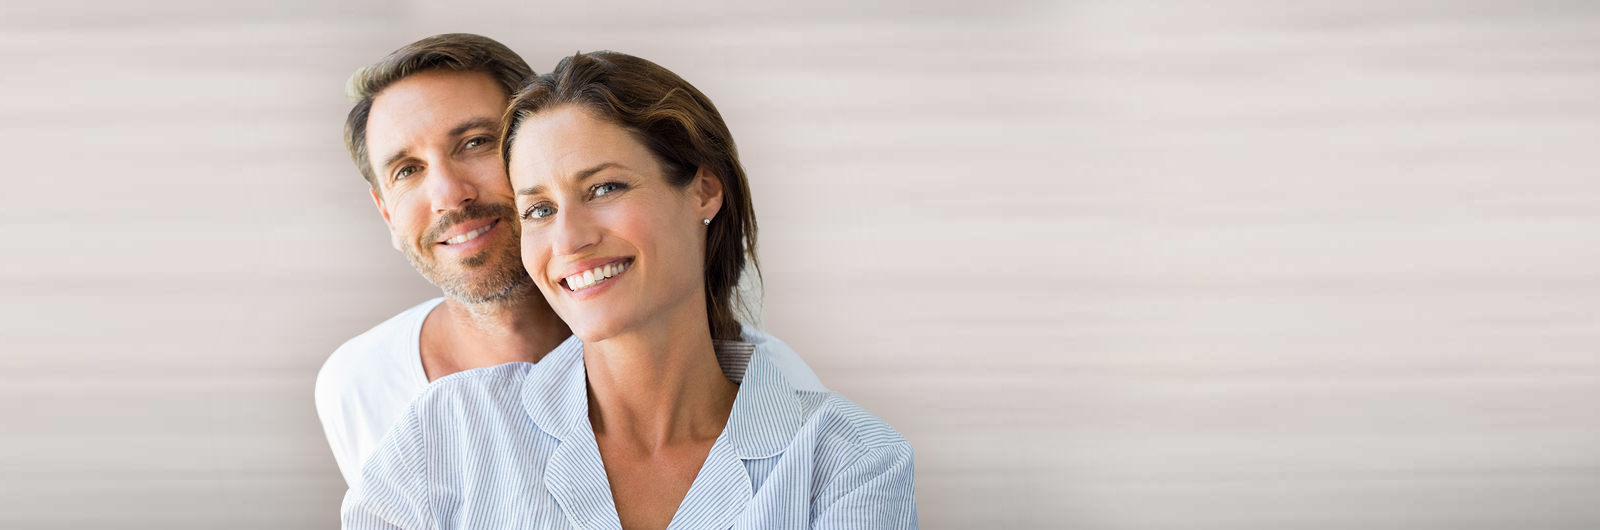 Feel Good About Your Smile With Dental Implants